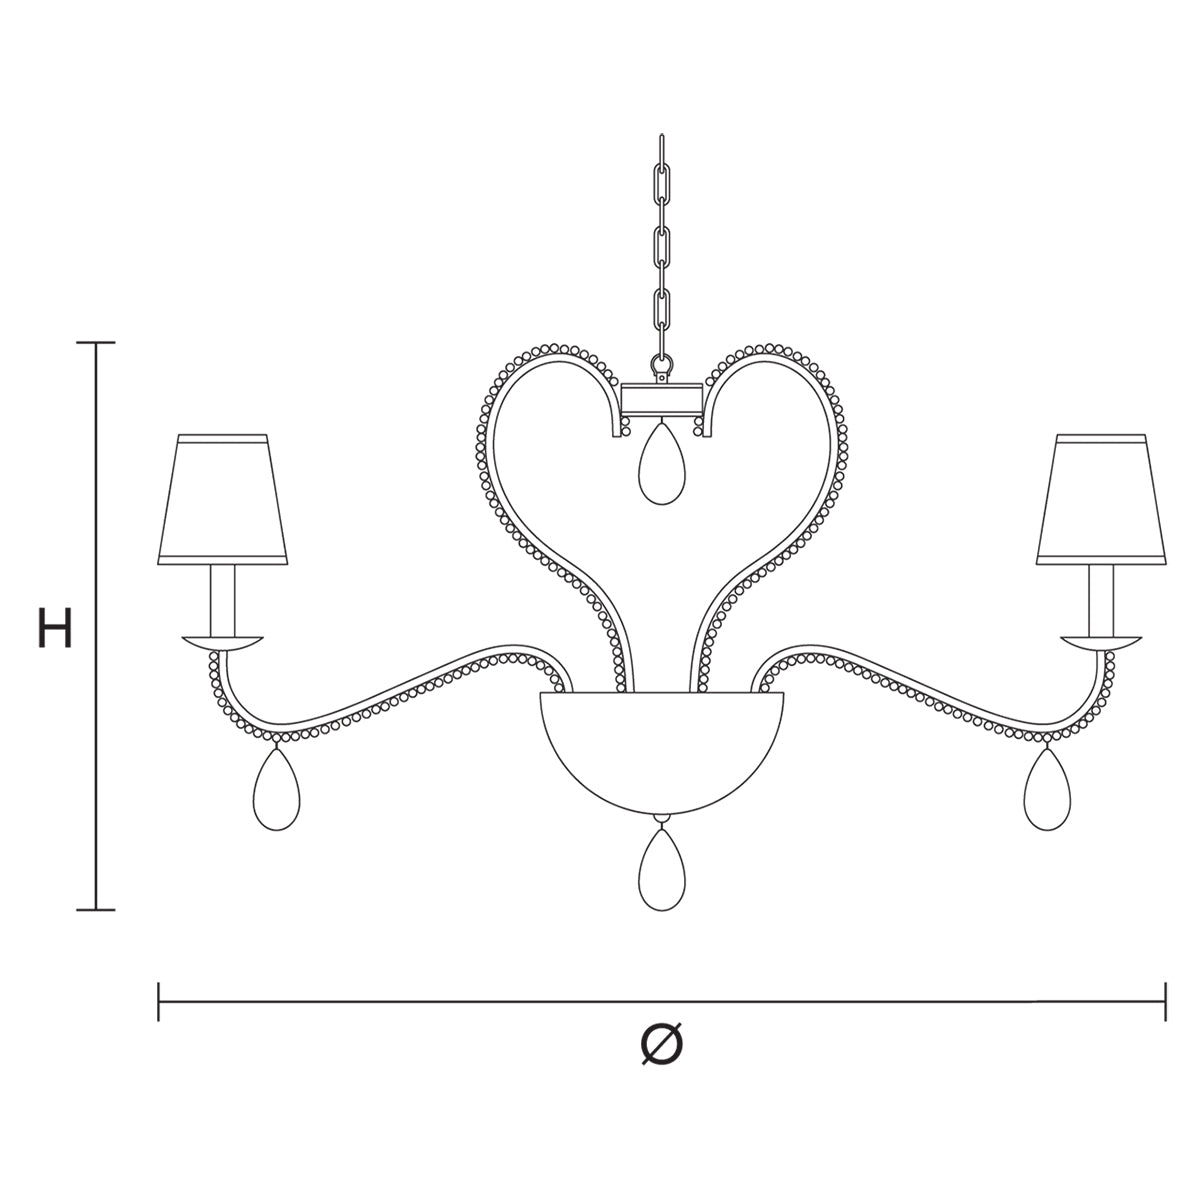 Noblesse 8 Chandelier Specifications